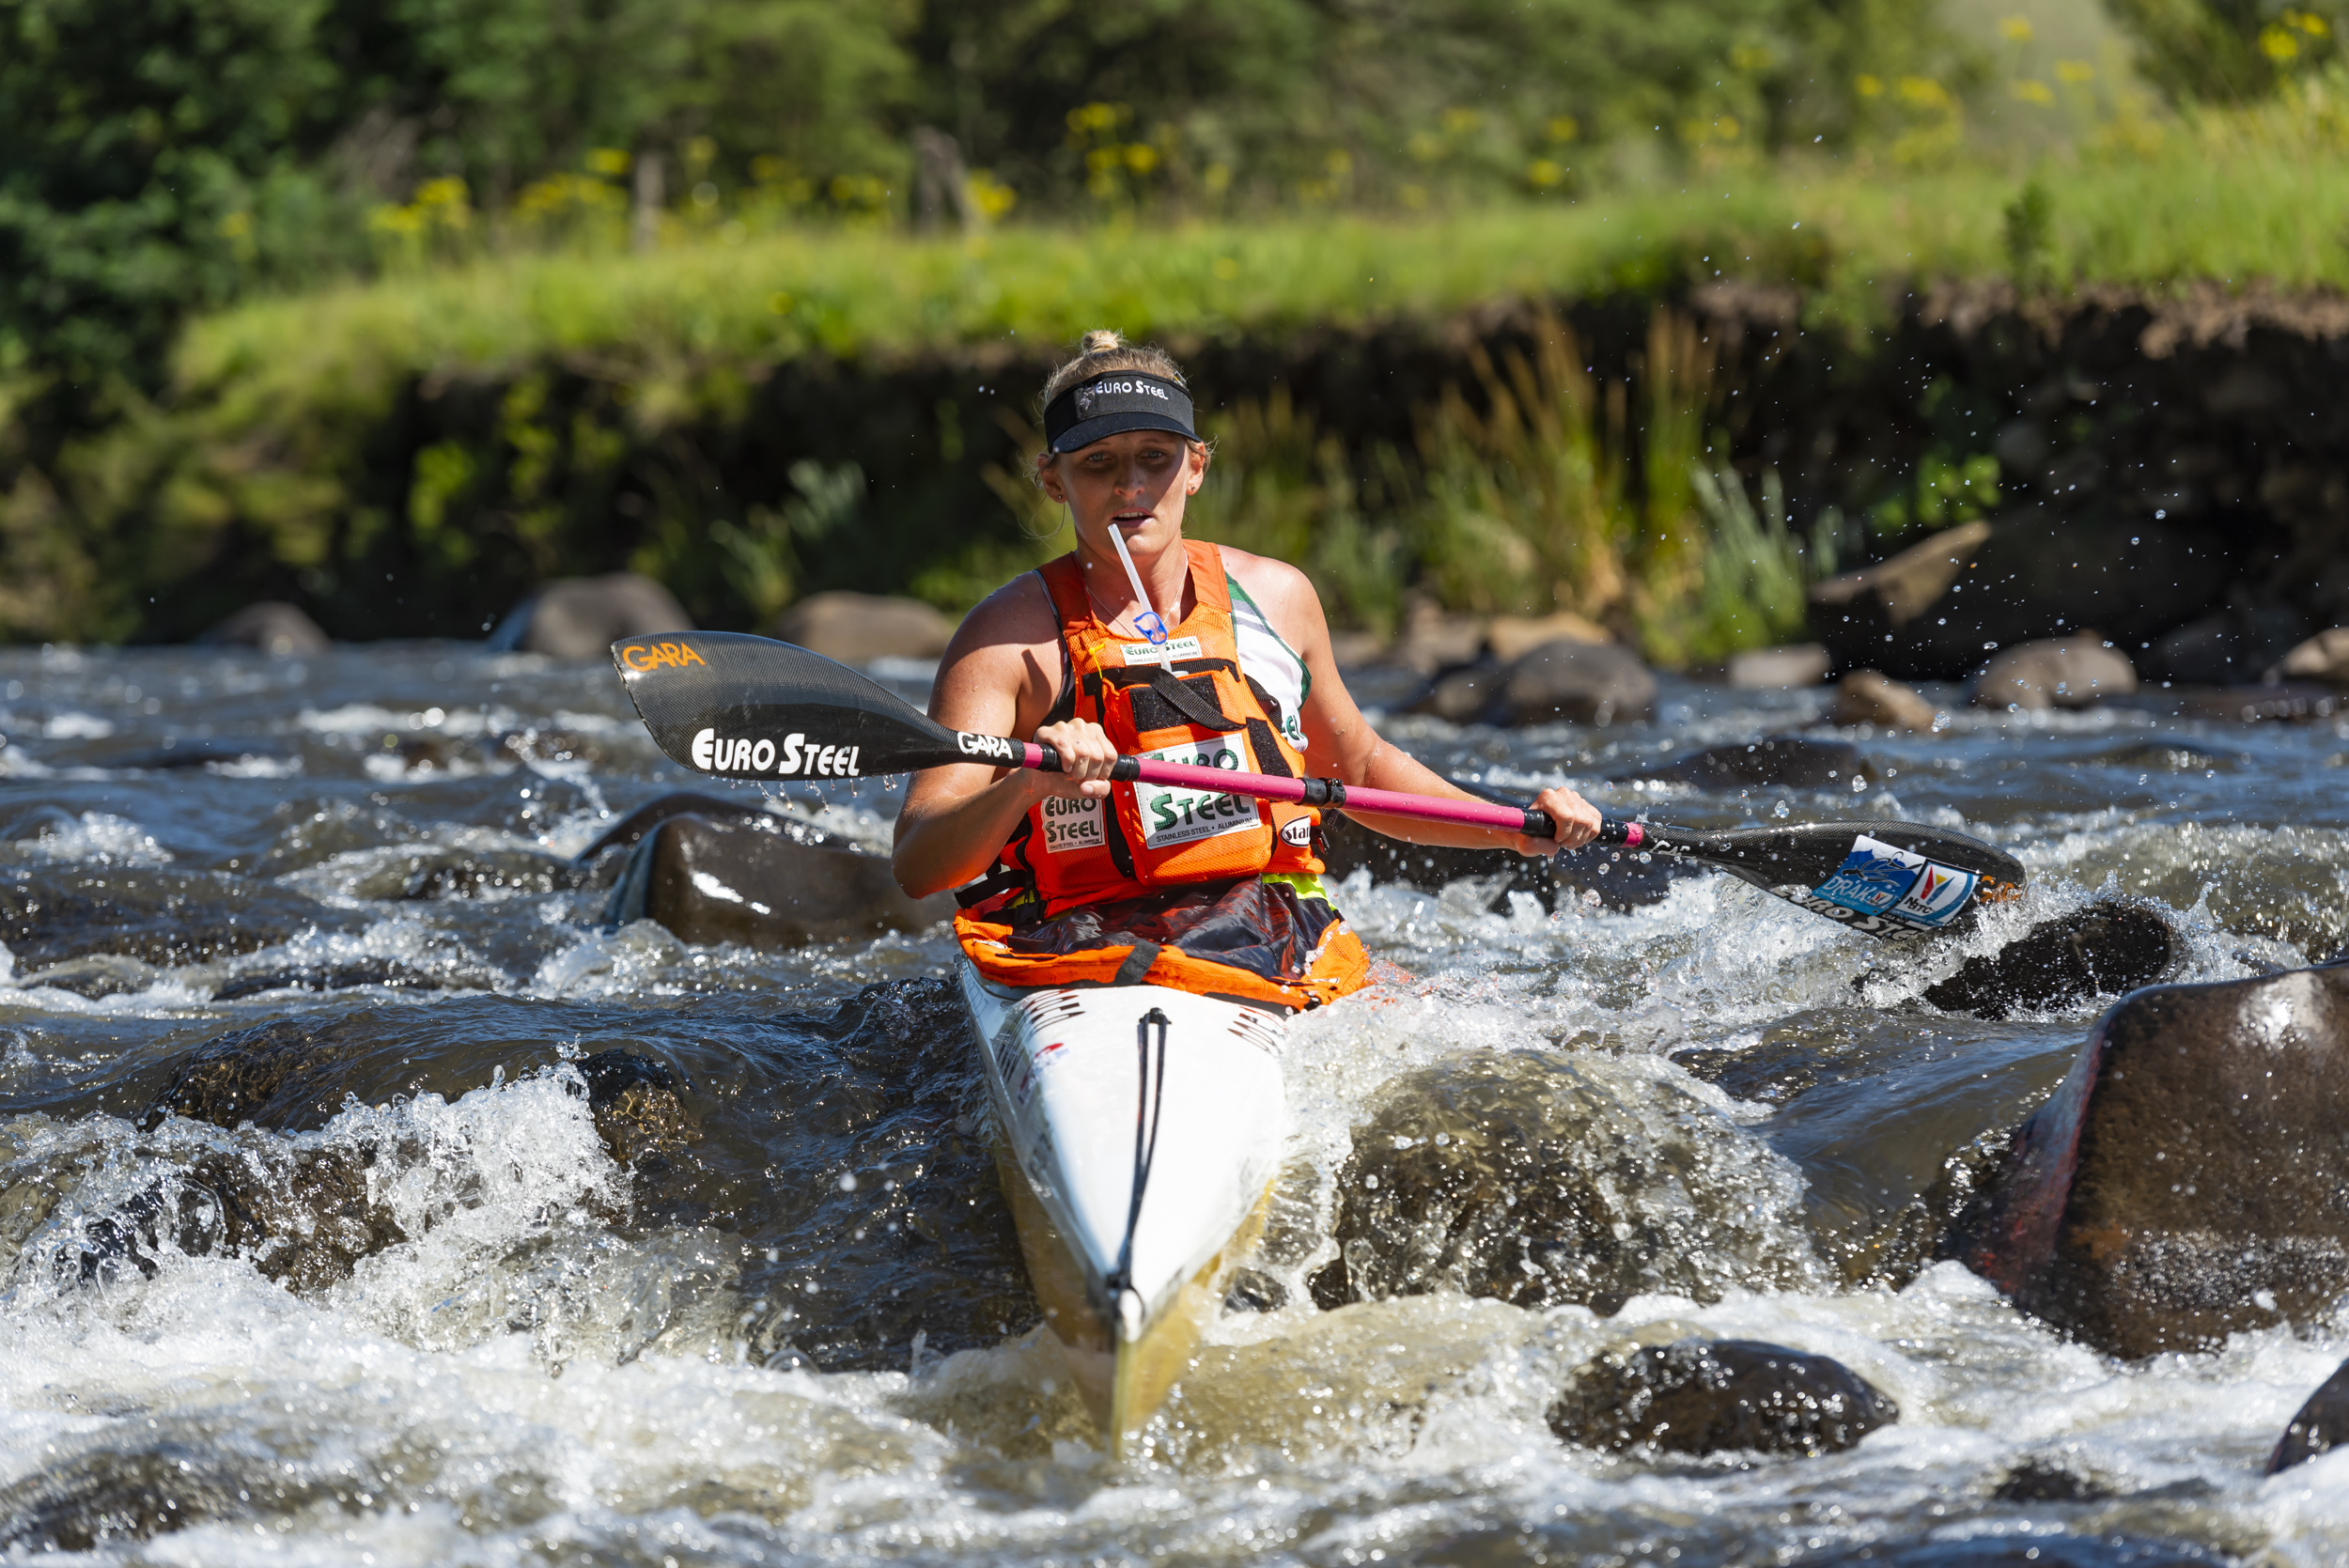 Jenna Ward back to defend Drak women's crown